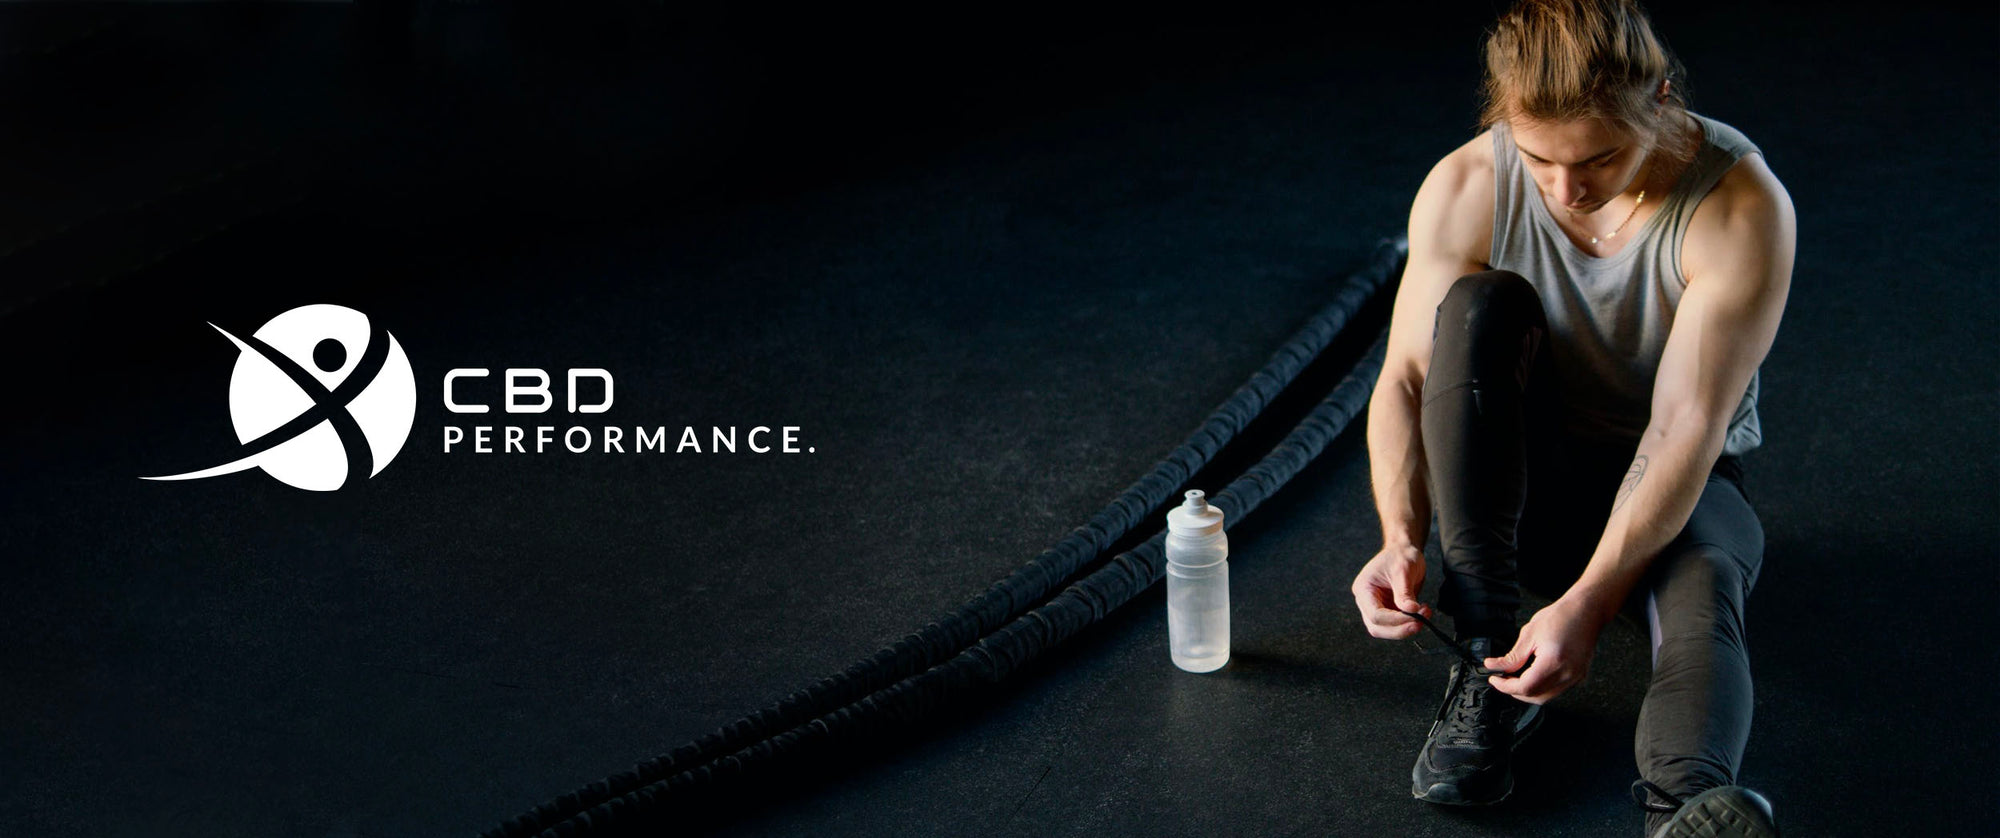 How can CBD improve your performance in the gym & in your daily life?